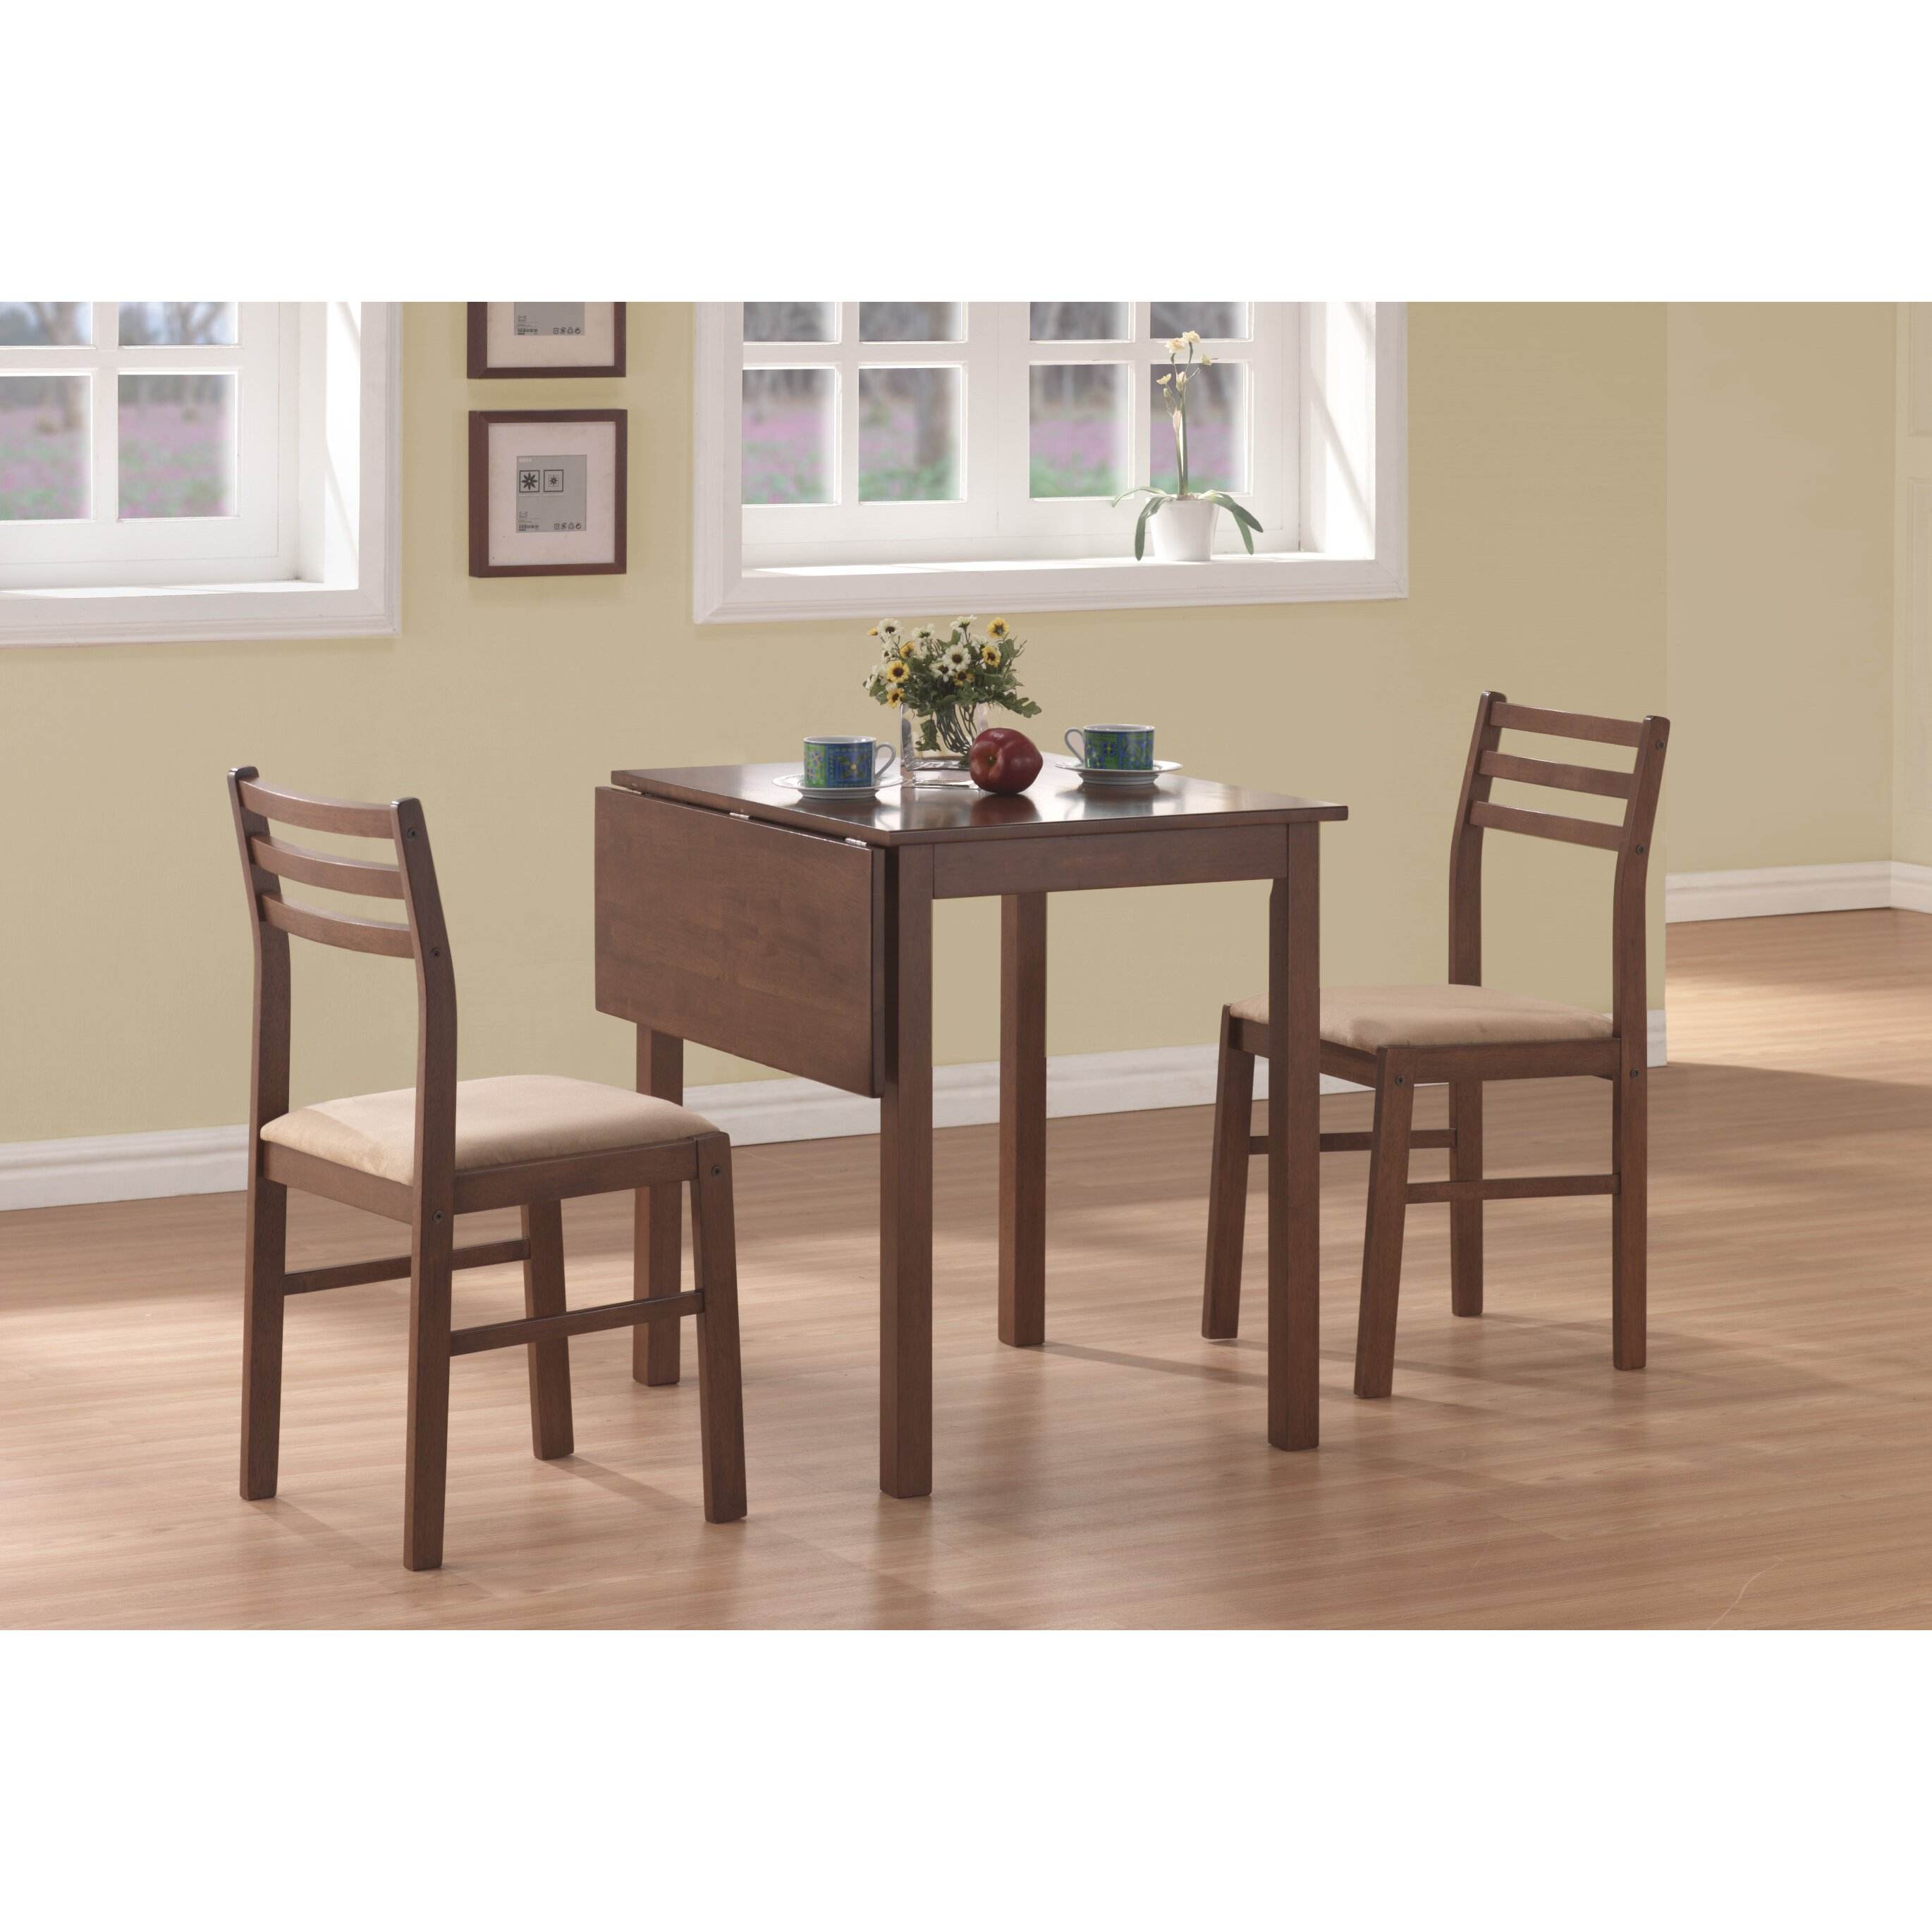 3 piece kitchen dining room sets c a~ two seat kitchen table 3 Piece Dining Set